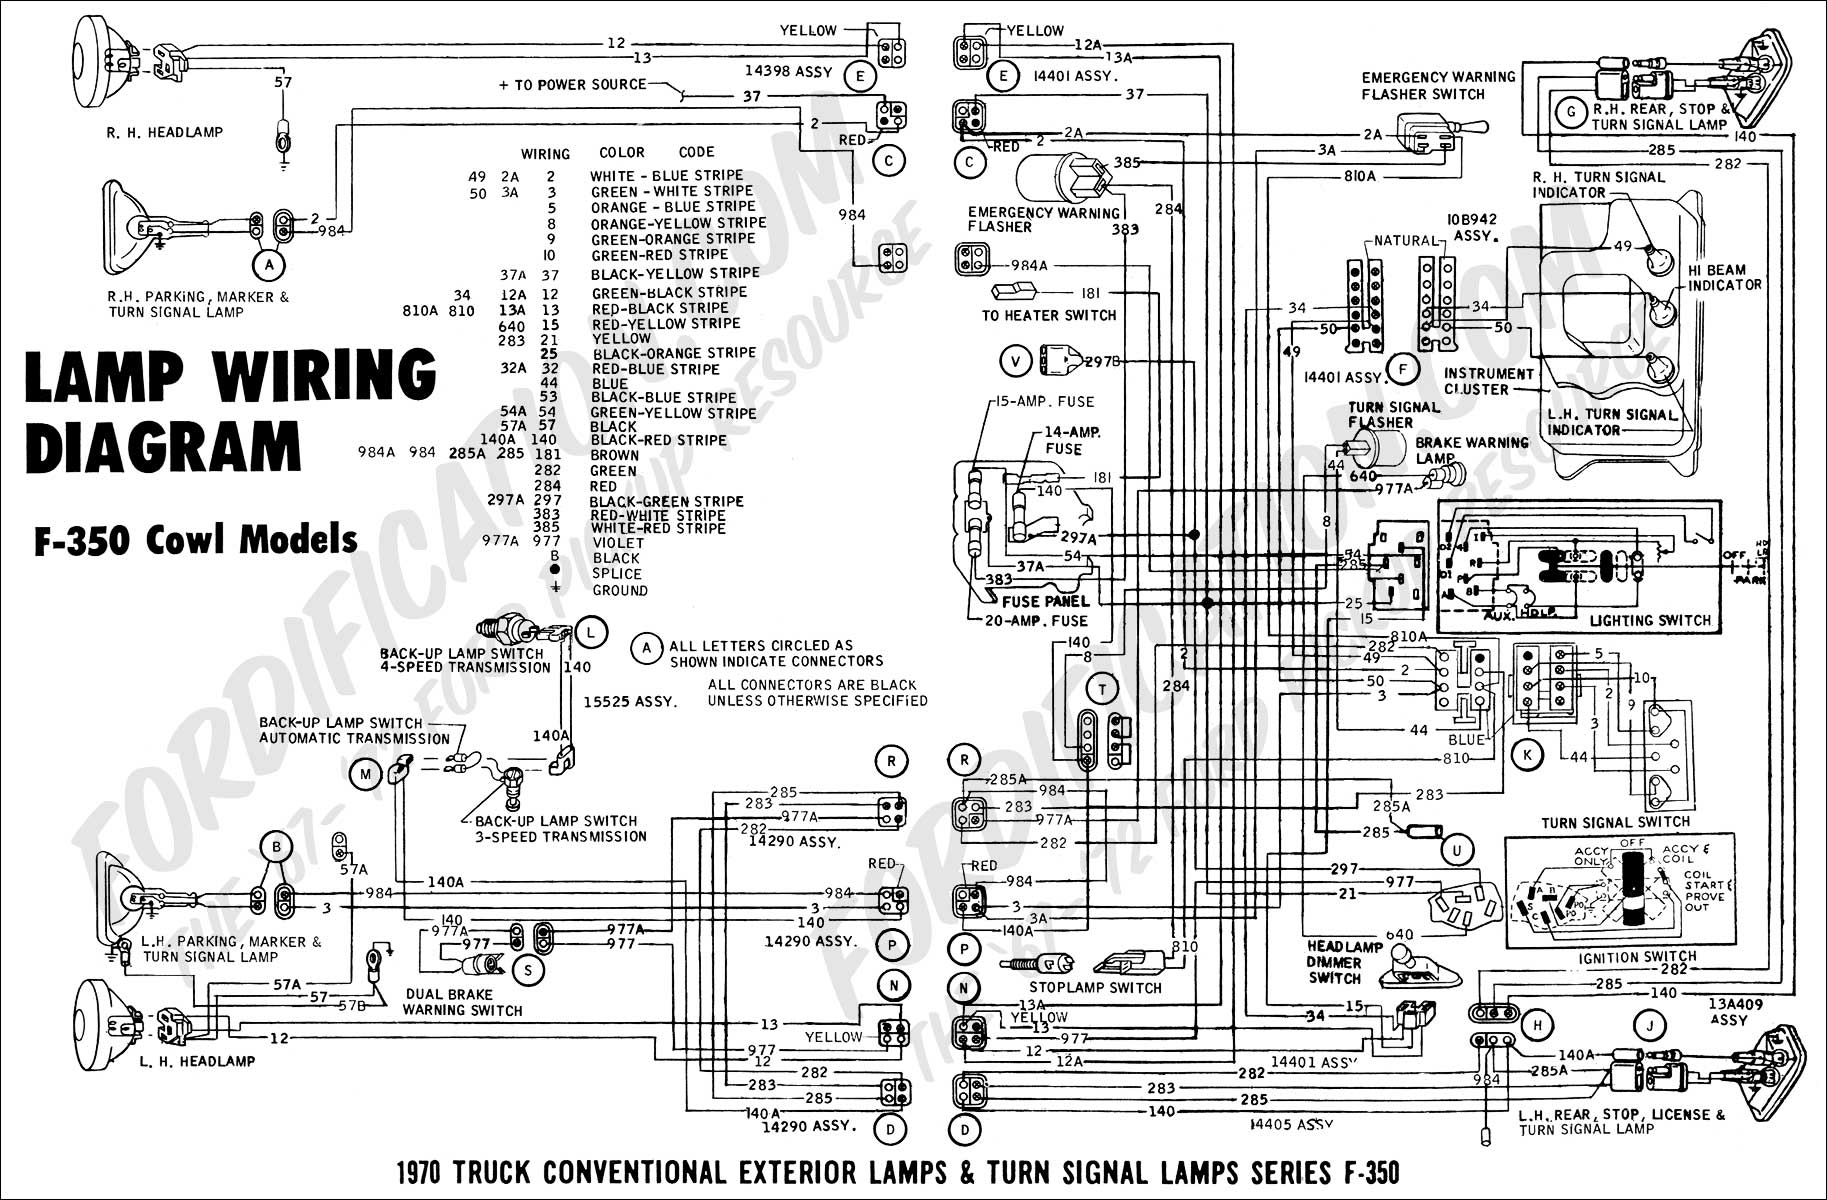 hight resolution of 2001 f250 wiring diagram everything about wiring diagram u2022 rh calsignsolutions com 2002 ford expedition trailer wiring diagram 2002 ford ranger trailer